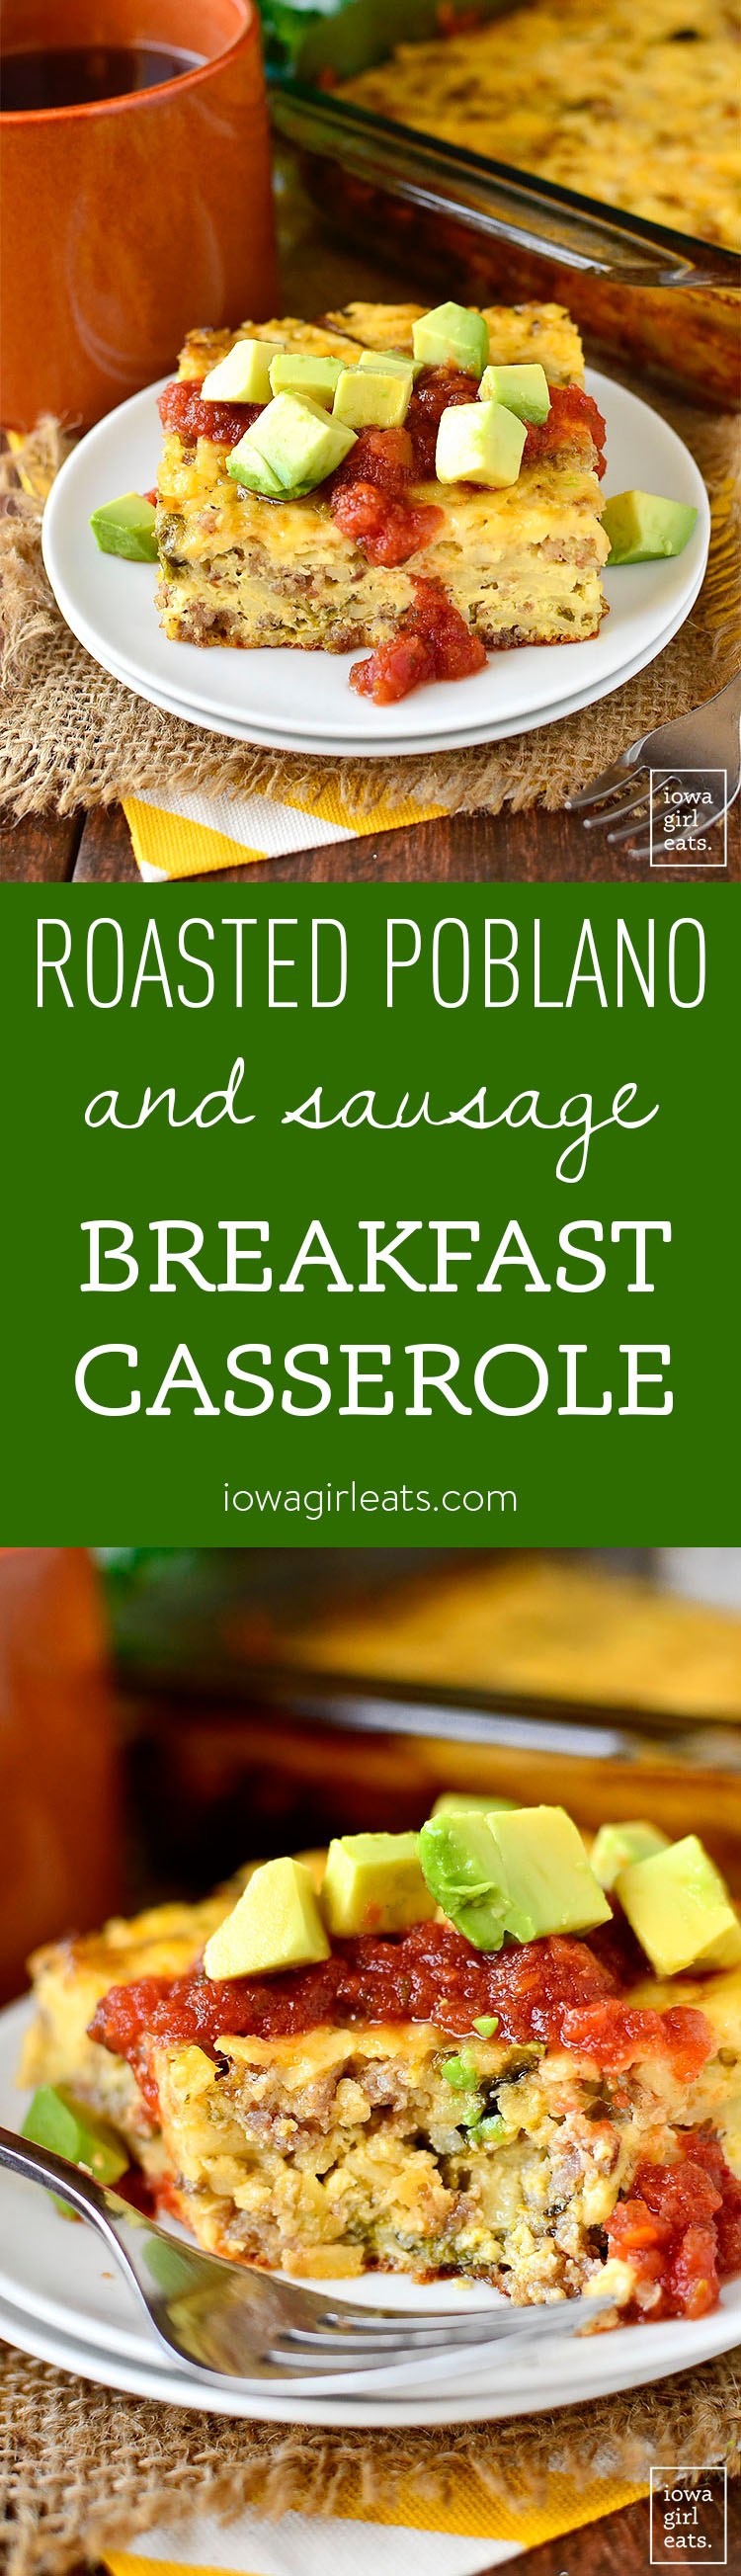 Gluten-Free Roasted Poblano and Sausage Breakfast Casserole is deliciously filling with a warming, mild spice. Easy to make ahead, too! | iowagirleats.com